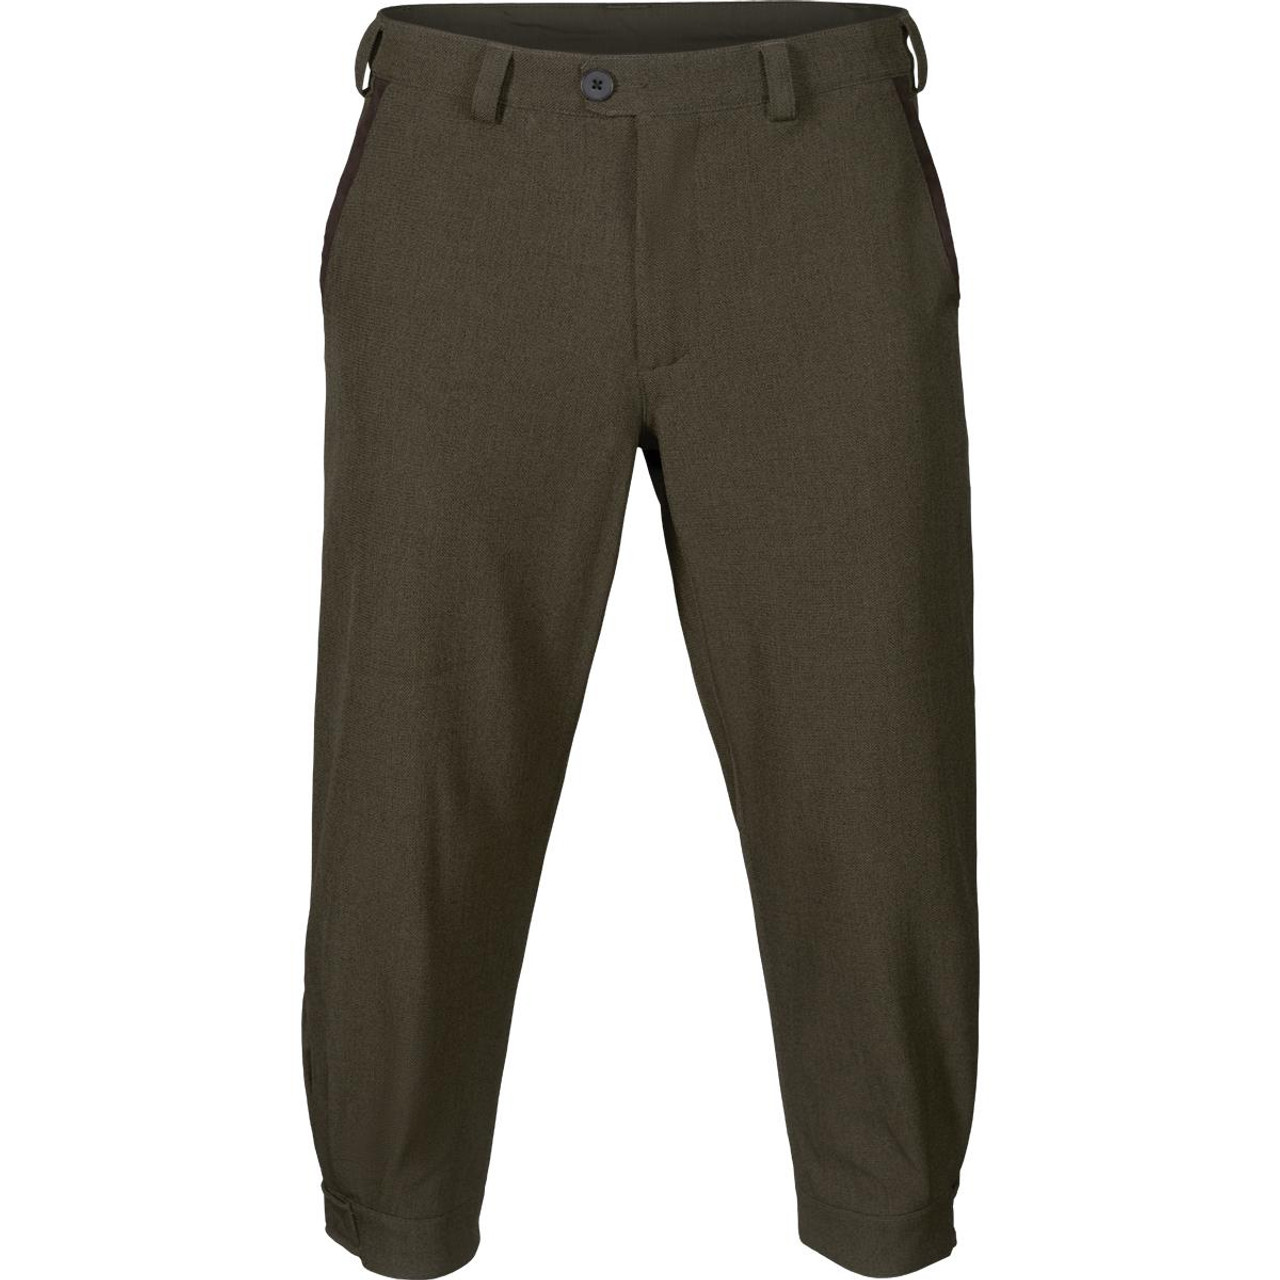 Shaded Olive Seeland Woodcock Advanced Breeks